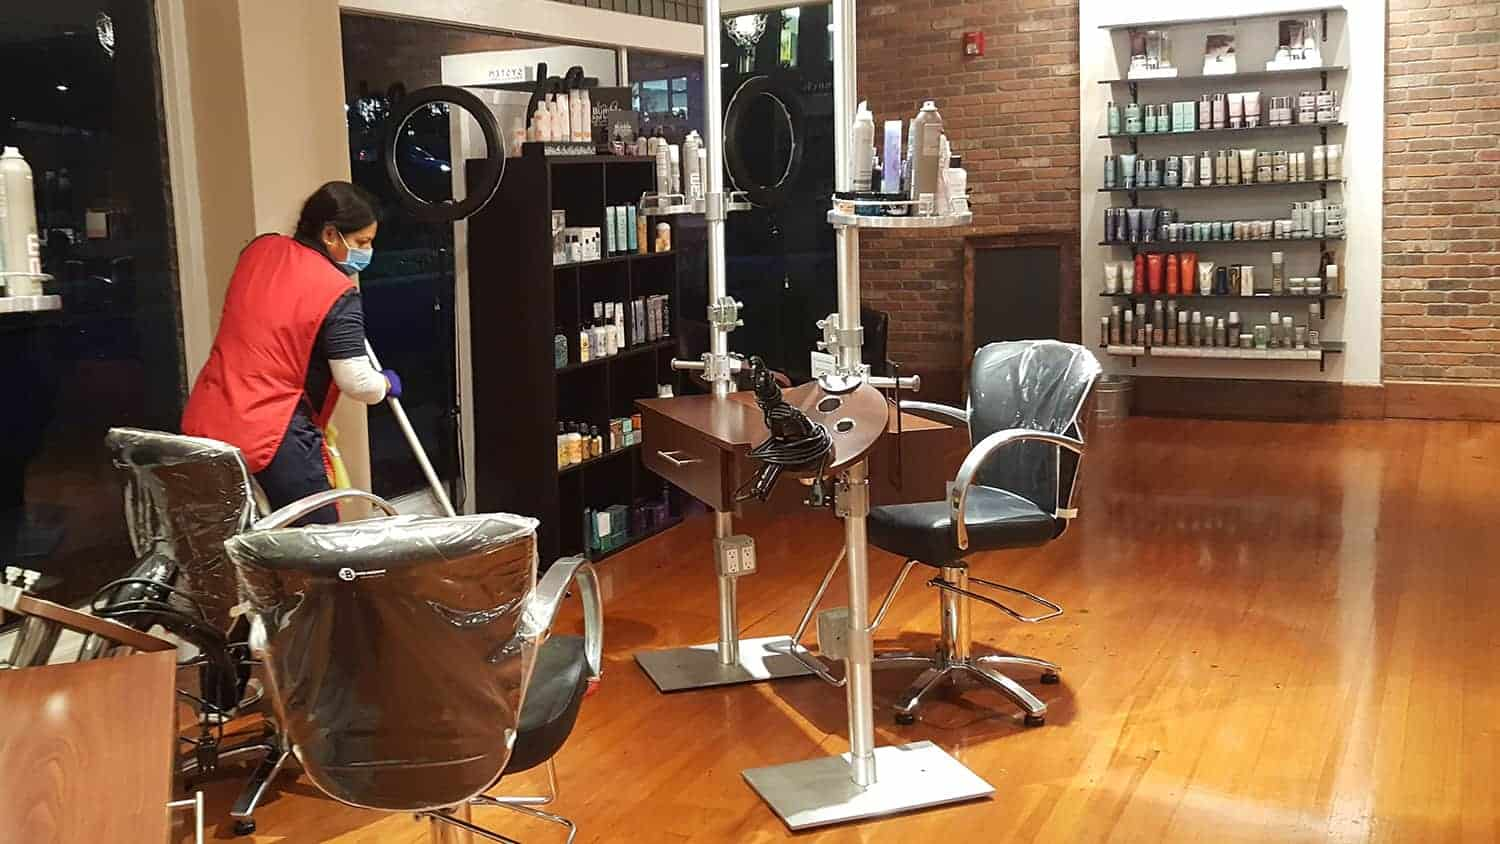 Menage Total Beauty Salon Cleaning Service